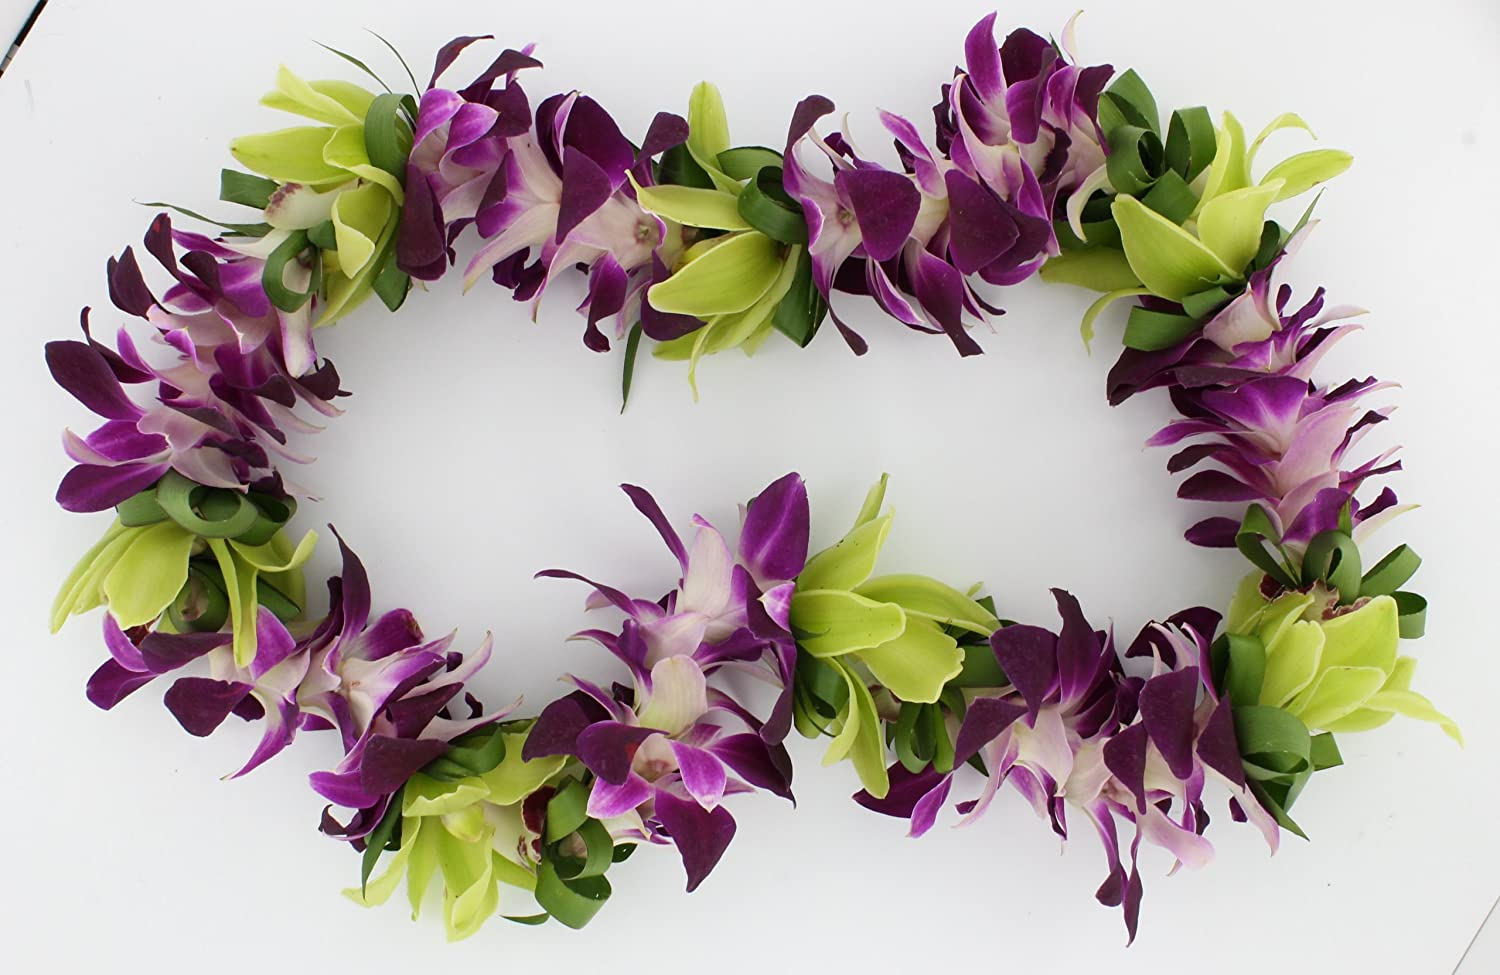 Amazon hawaiian fresh flowers floral leis lei for retirement amazon hawaiian fresh flowers floral leis lei for retirement graduation birthdays weddings achievement celebration and any special occasions izmirmasajfo